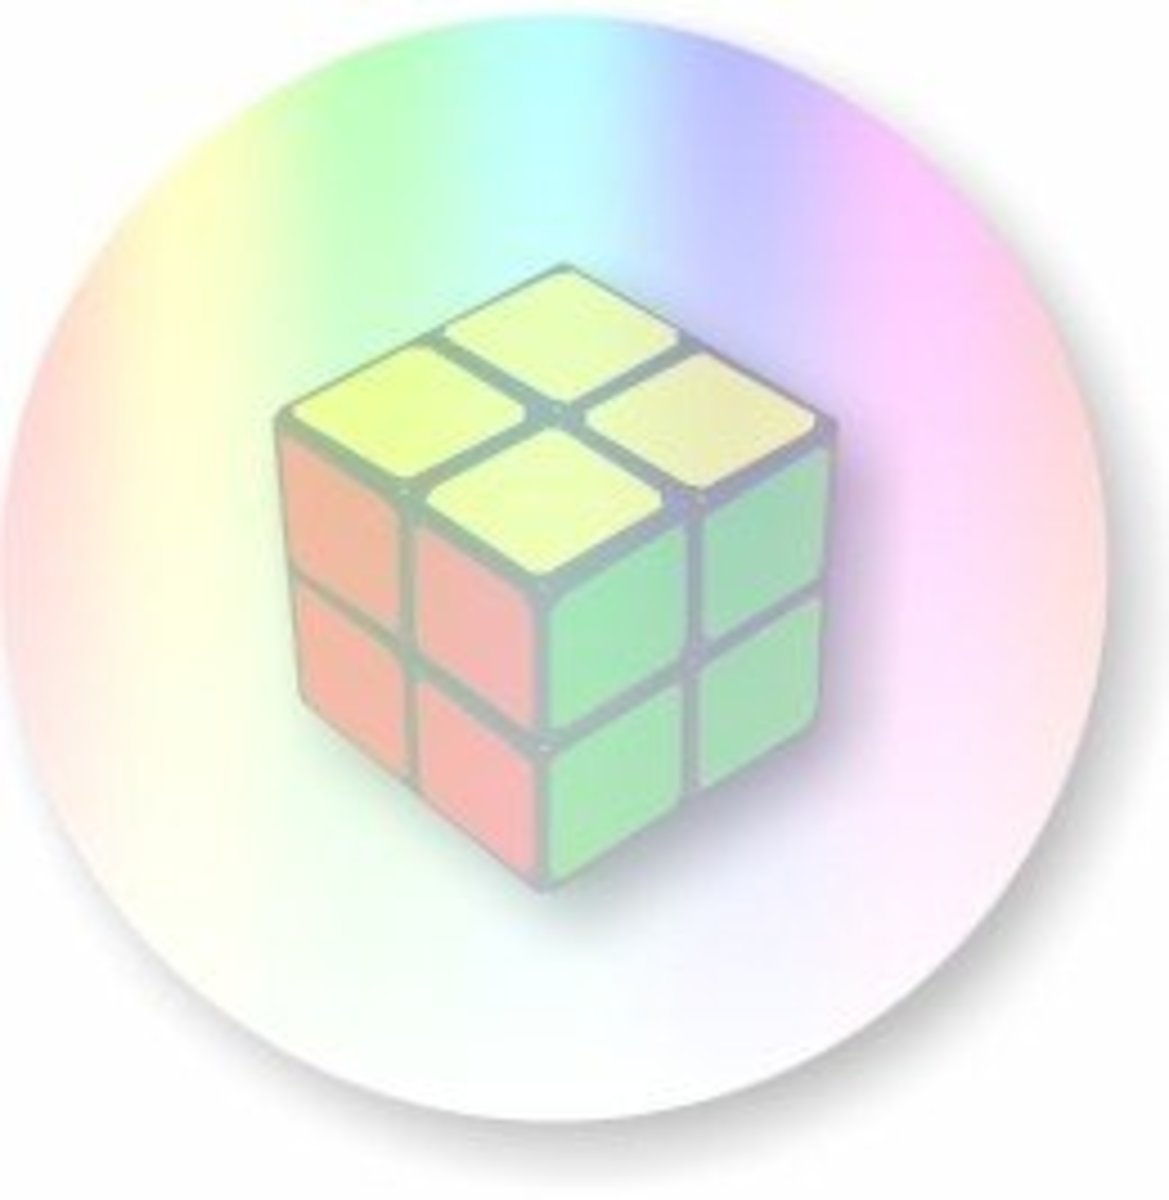 How To Solve A 2x2x2 Rubiks Cube